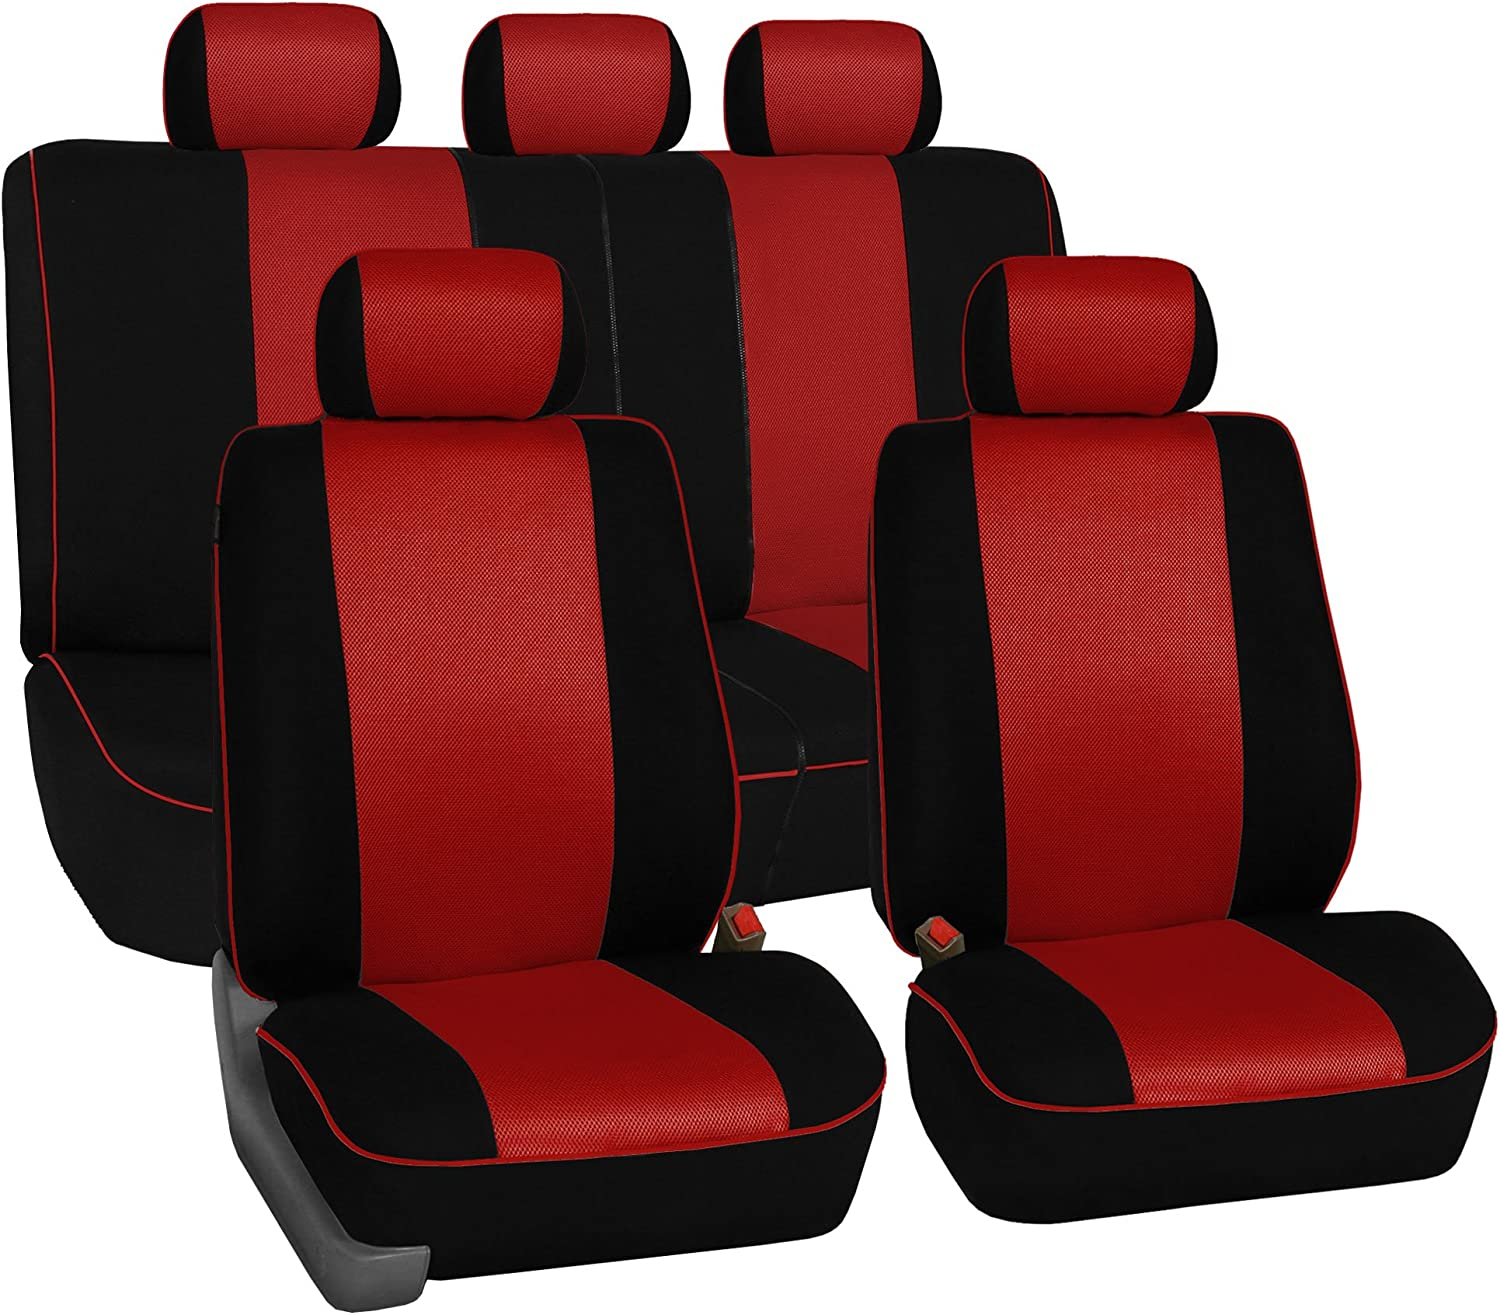 FH Group FB063115 Full Set Sports Fabric Car Seat Covers, Airbag Compatible and Split Bench Red/Black Color- Universal Car, Truck, SUV, or Van